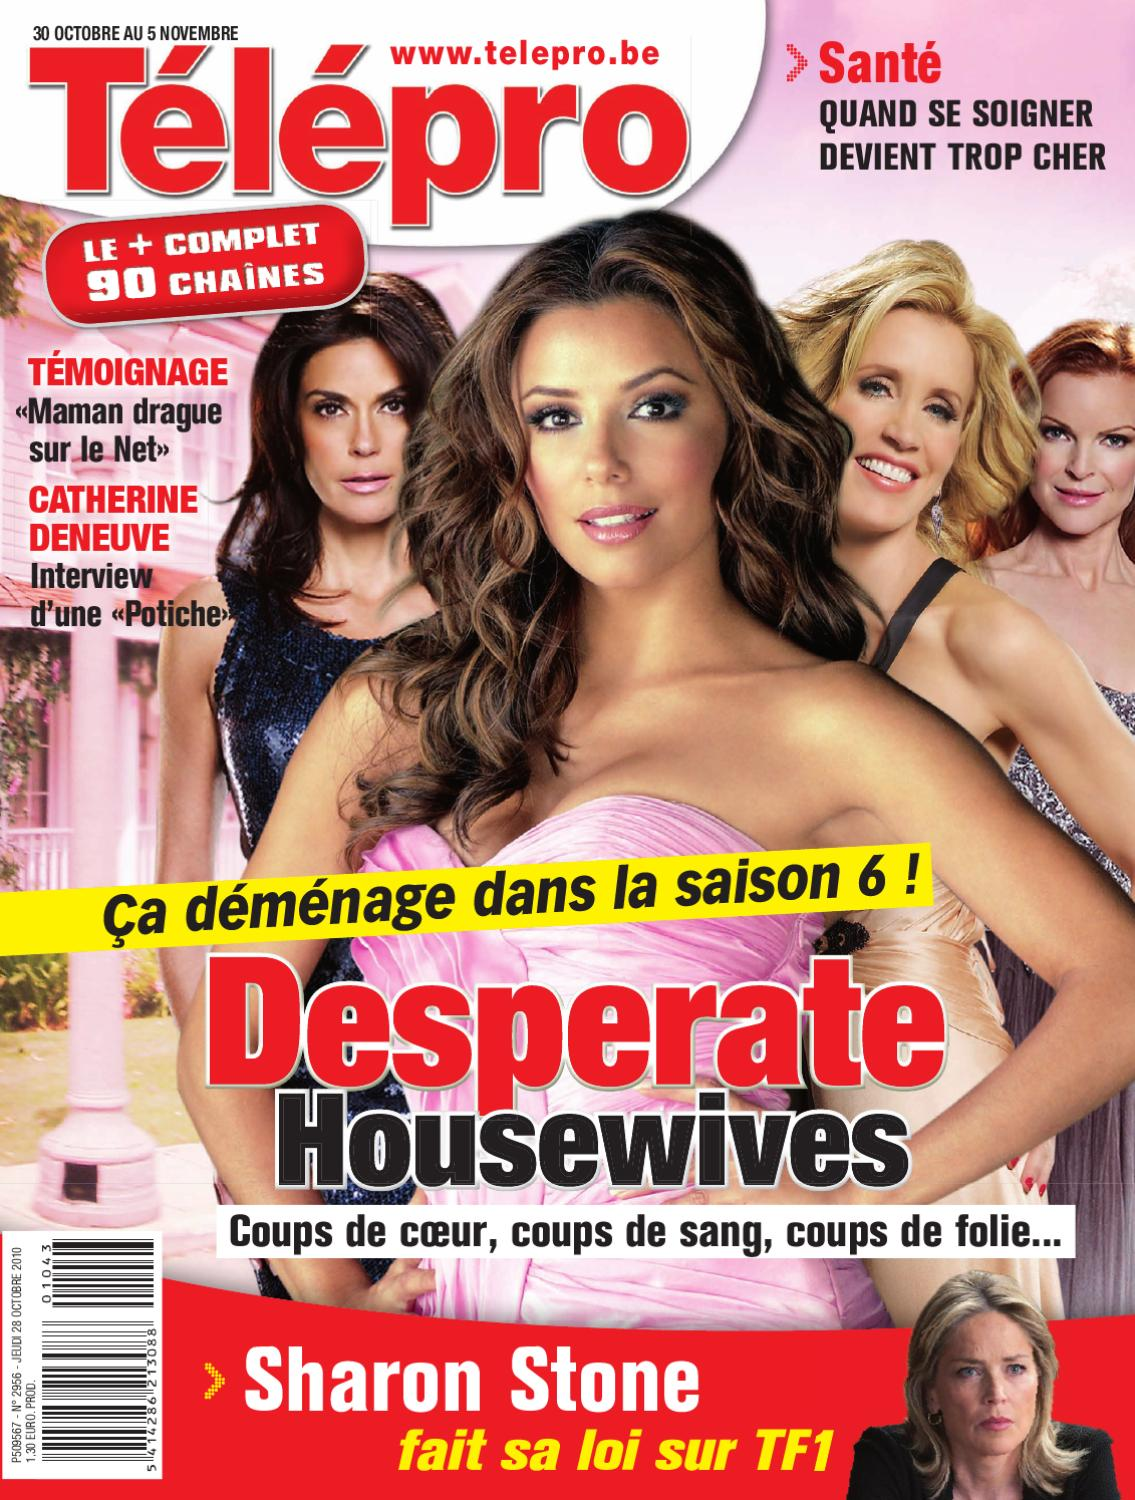 864c4a263fa855 Télépro - Desperate Housewives by TeleproMagazine - issuu